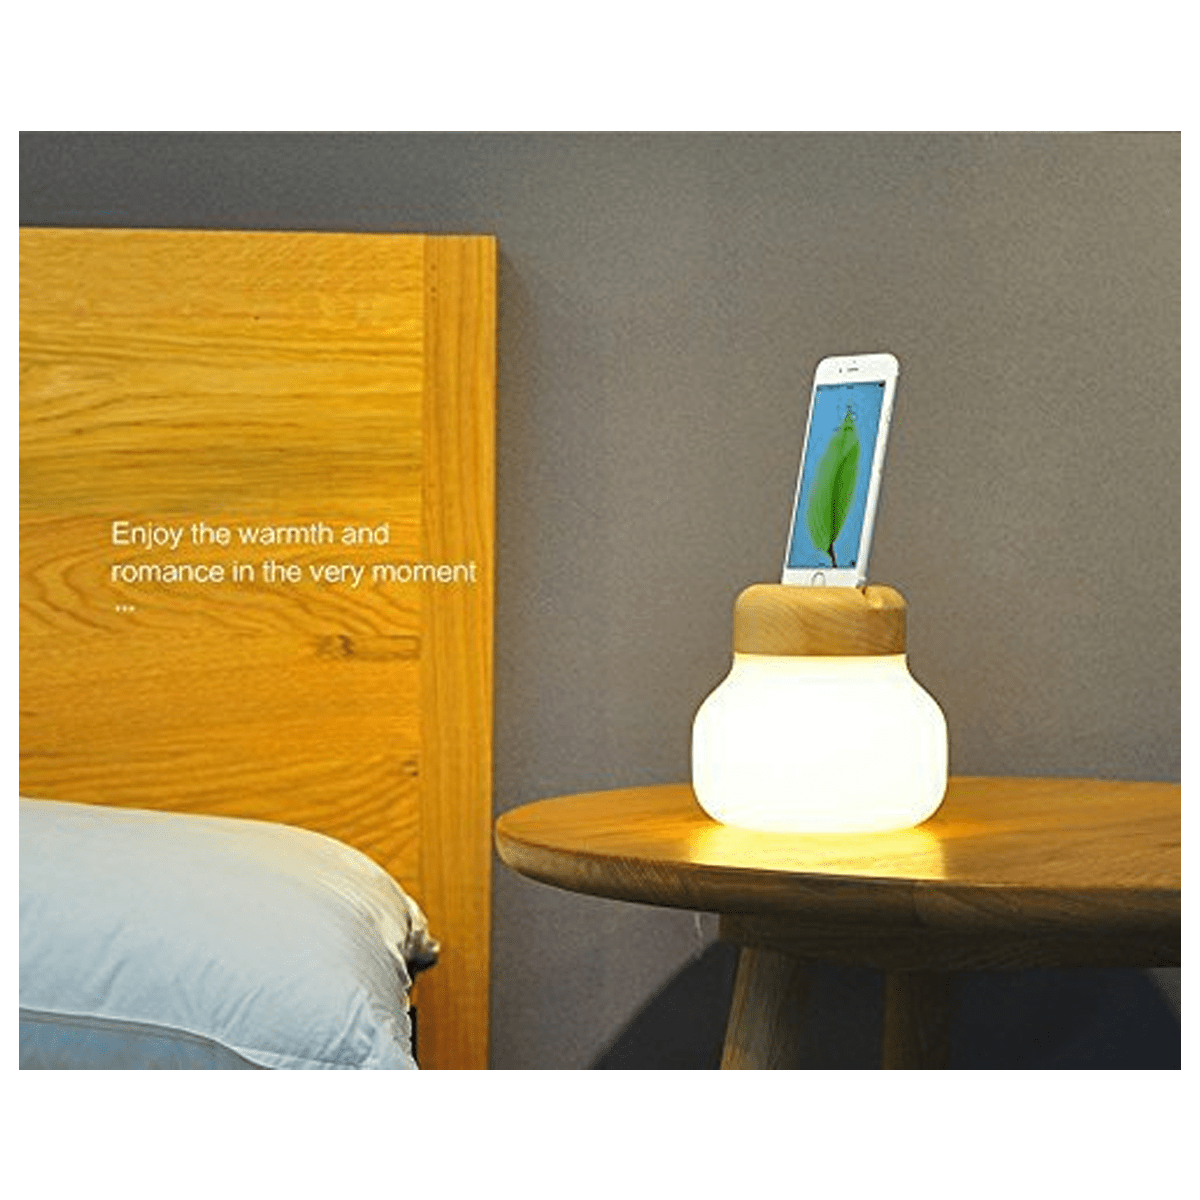 IDMIX x ZISION LED Atmosphere Table Lamp and iPhone Power Bank